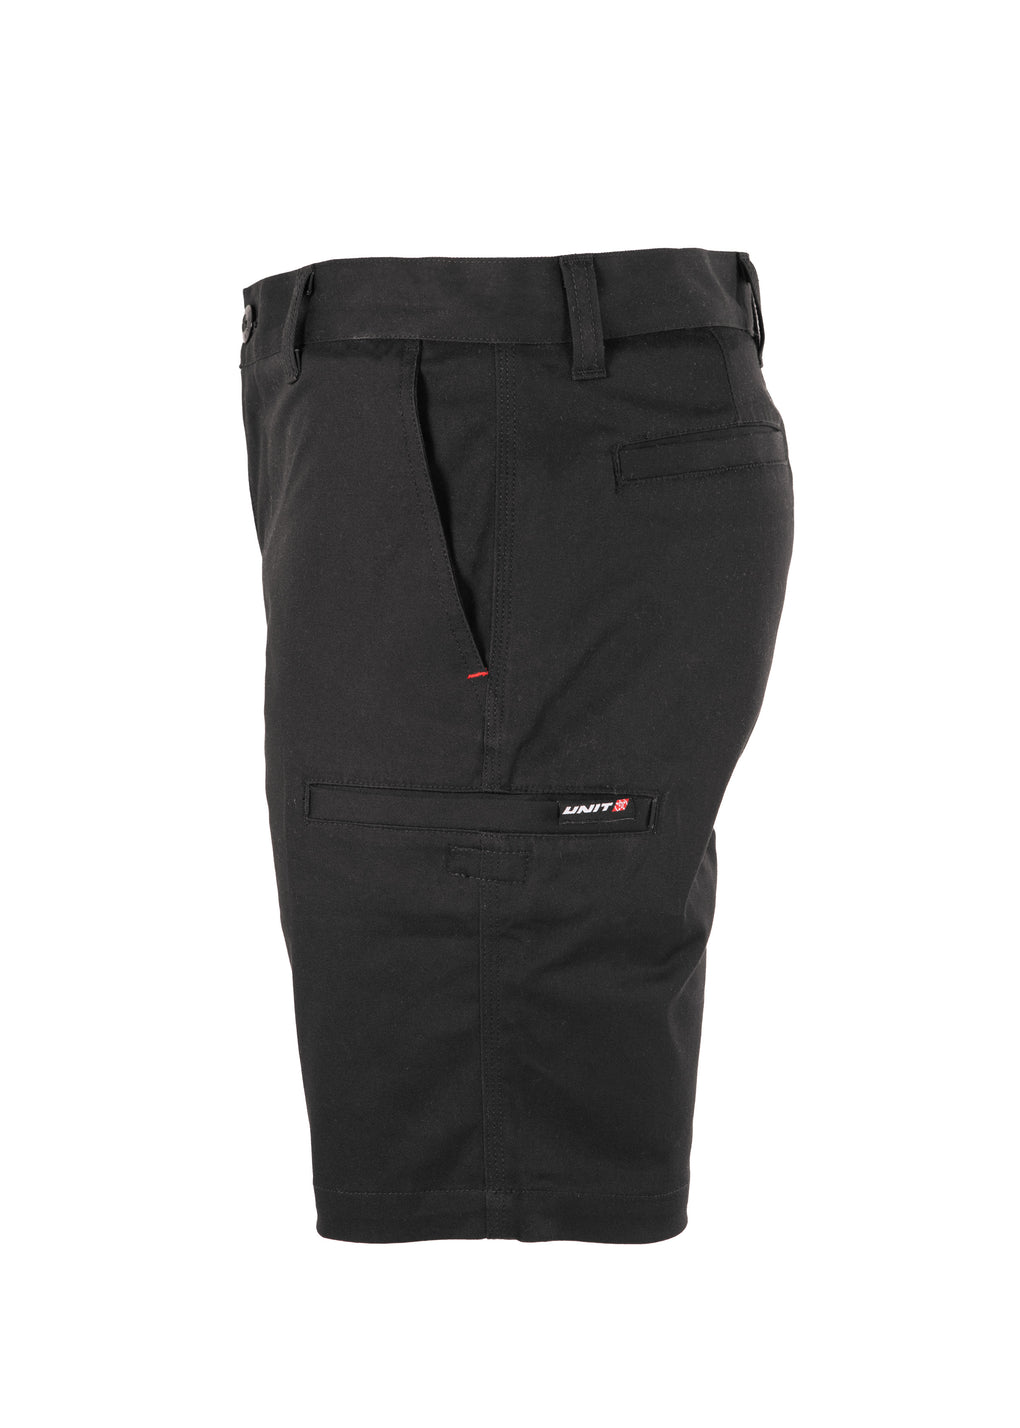 Ignition Work Shorts